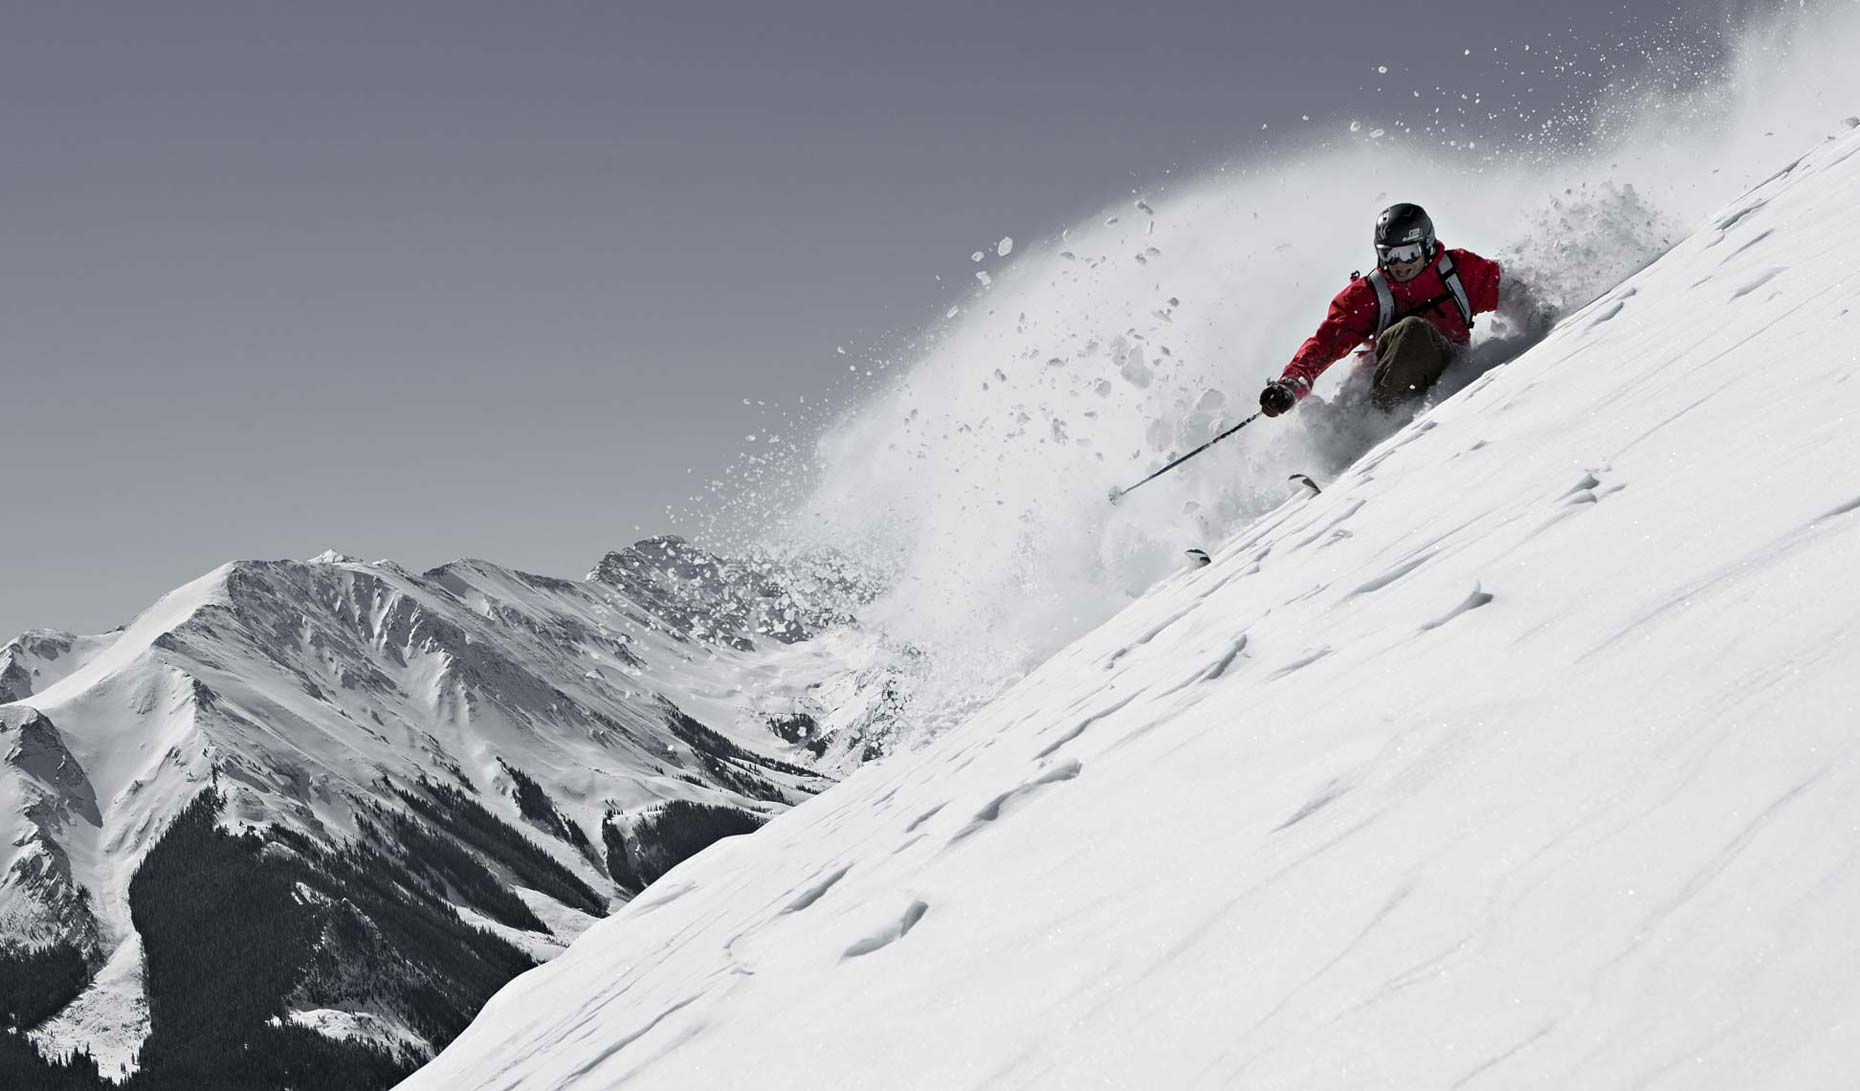 Tomas Zuccareno Photography | Skiing Powder in Colorado